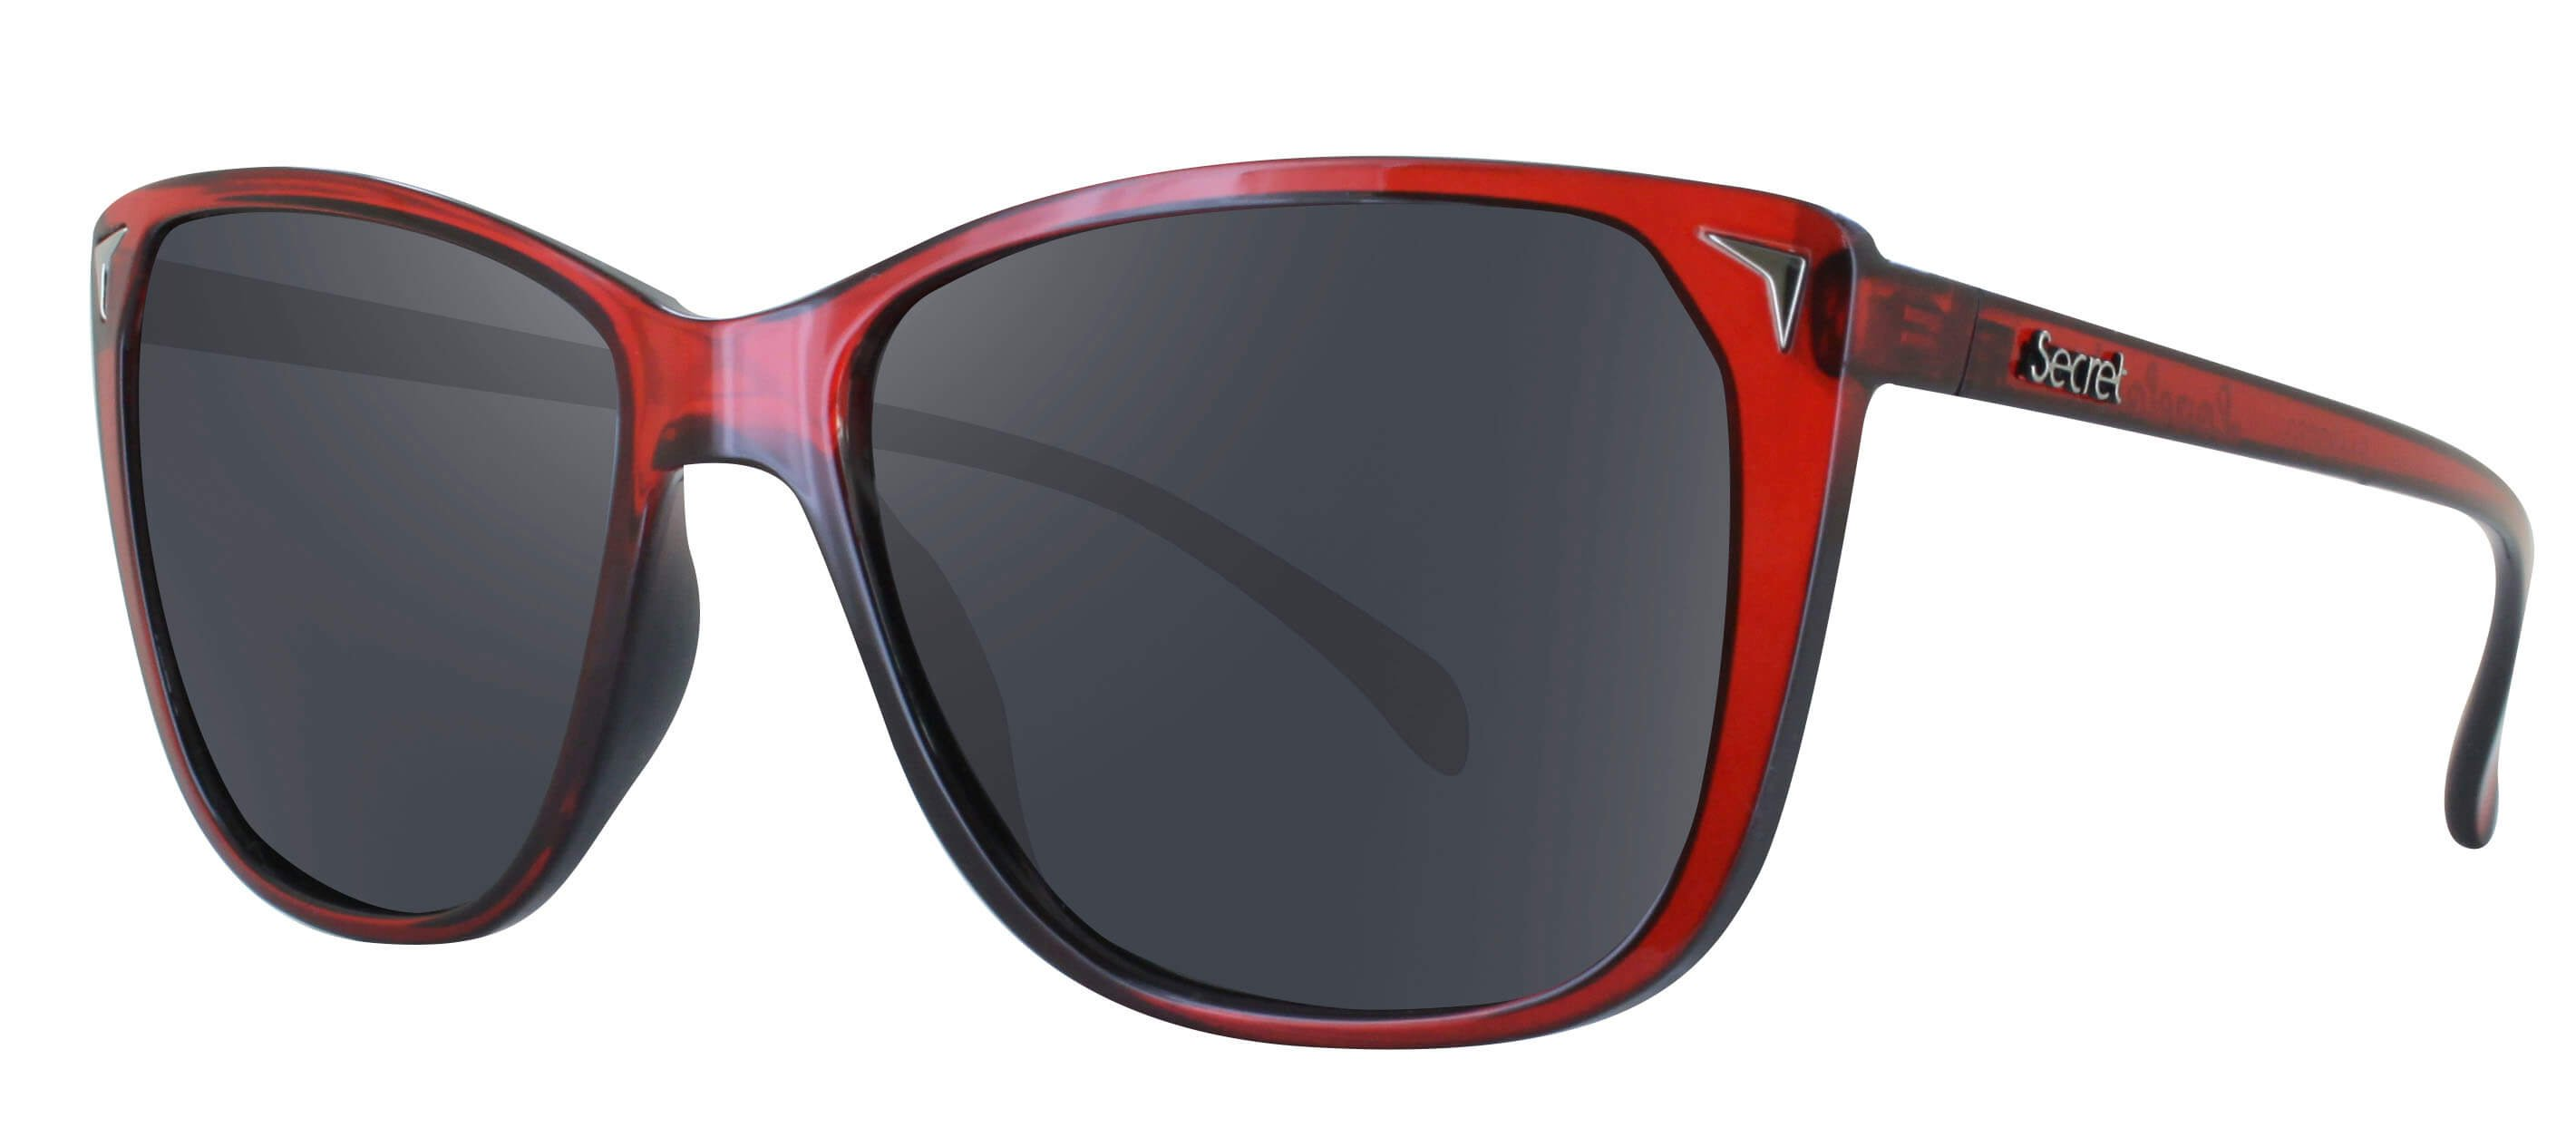 ÓC SECRET LOVEFOOL GLASSY BLACK ON RED / POLARIZED GRAY